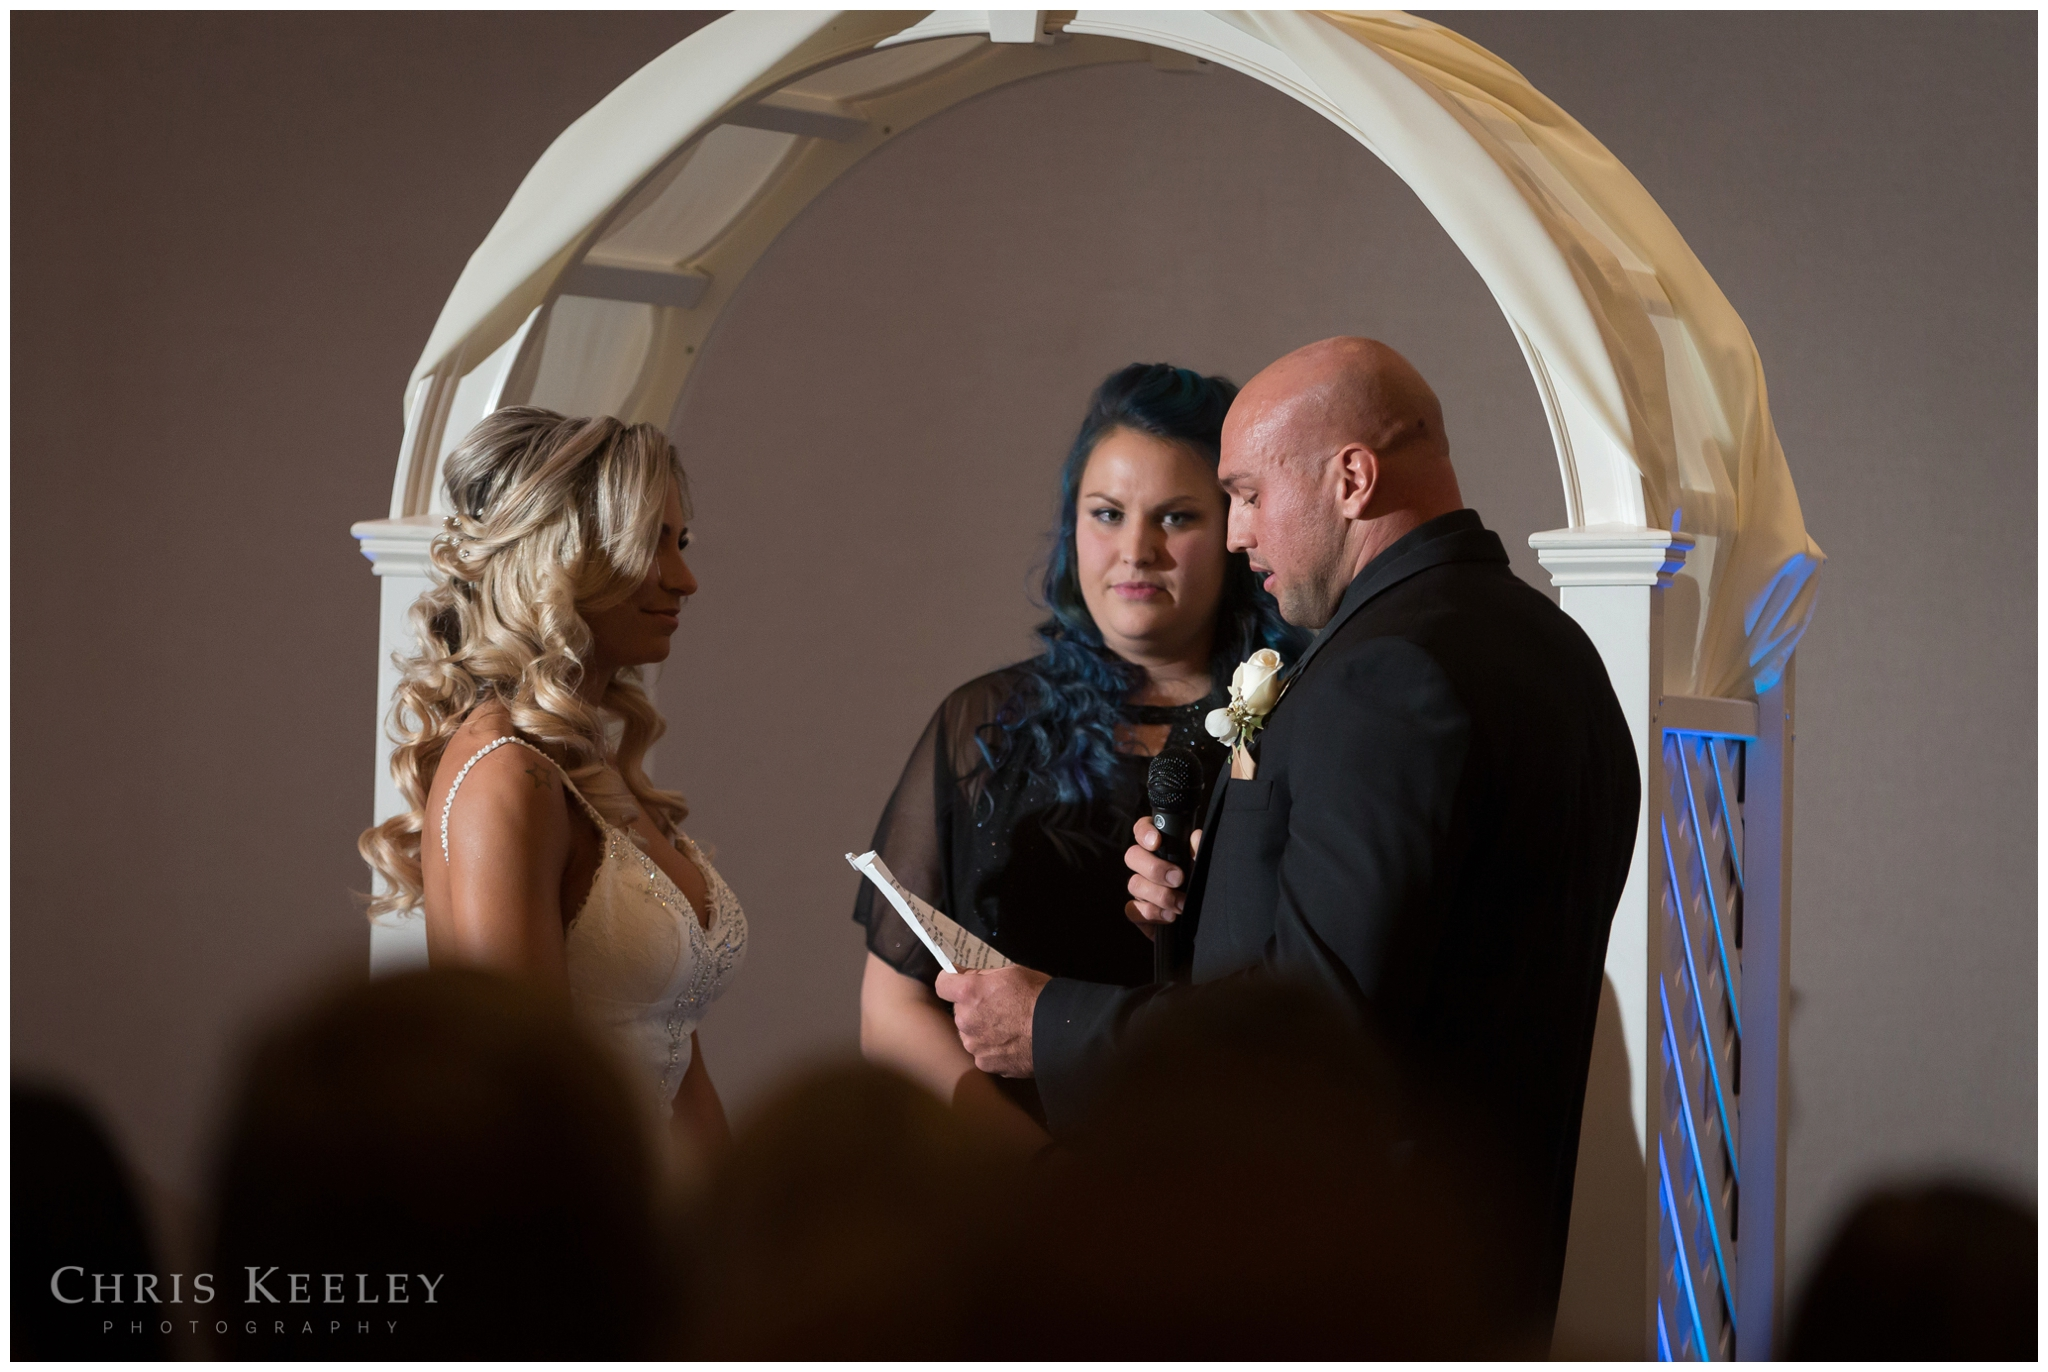 new-years-eve-wedding-photography-manchester-new-hampshire-18.jpg